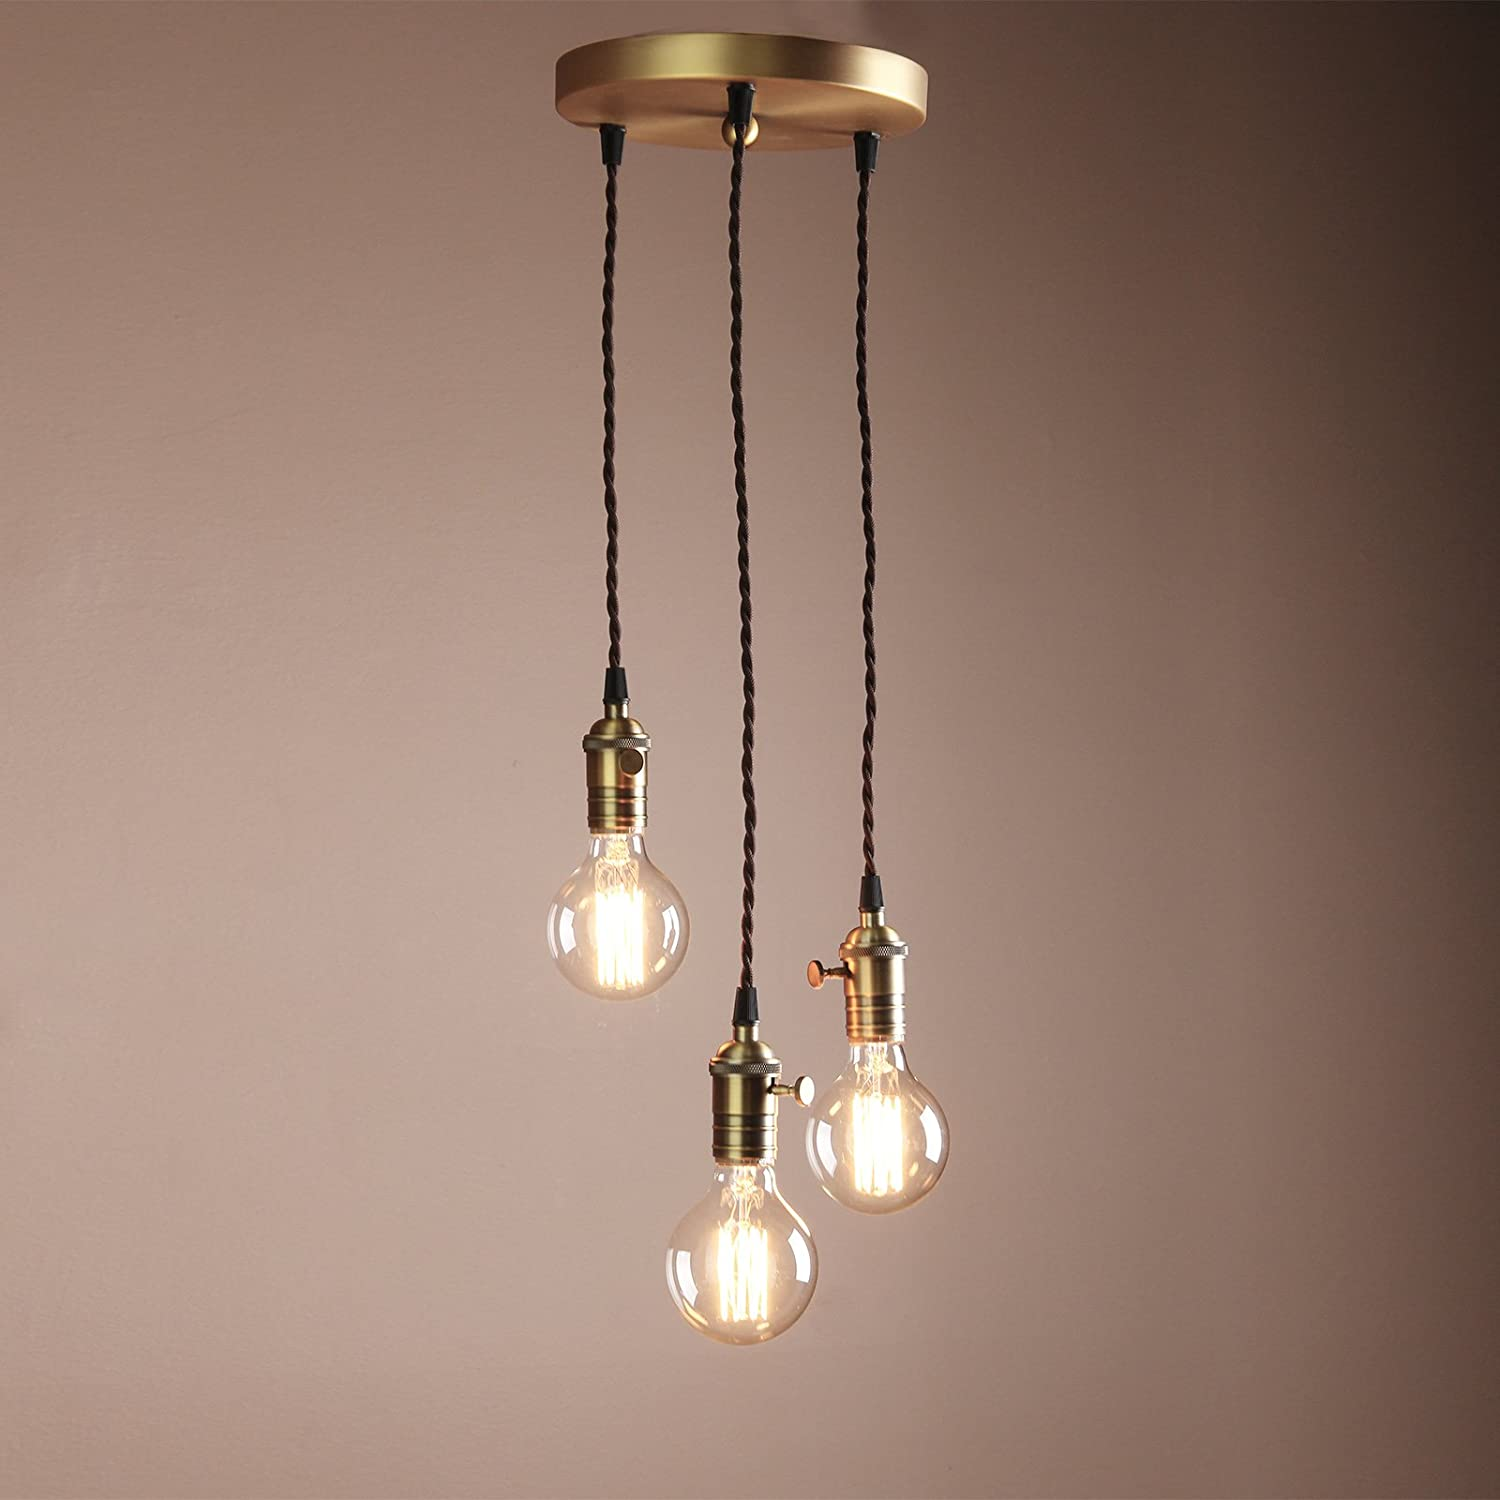 Buyee Deco Cluster 1 3 Vintage Ceiling Light Antique Lampholder Hanging Lamp Retro Pendant Light With 2m Braided Ceiling Cable Bulb Not Included Antique Finish Amazon Co Uk Kitchen Home